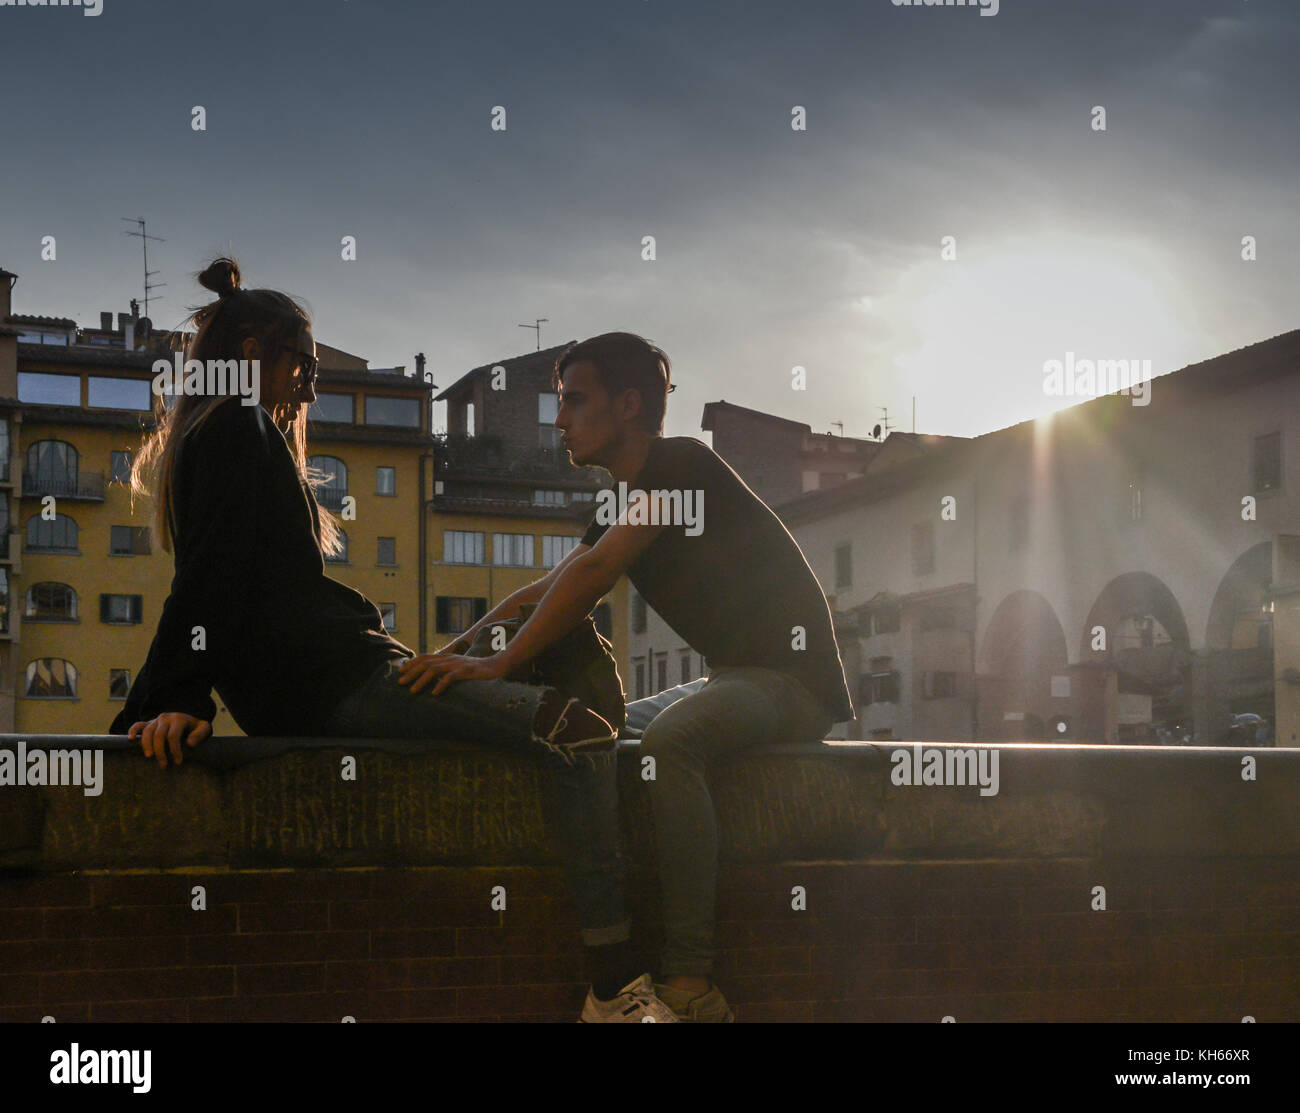 silhouette-of-young-couple-next-to-ponte-vecchio-in-florence-tuscany-KH66XR.jpg